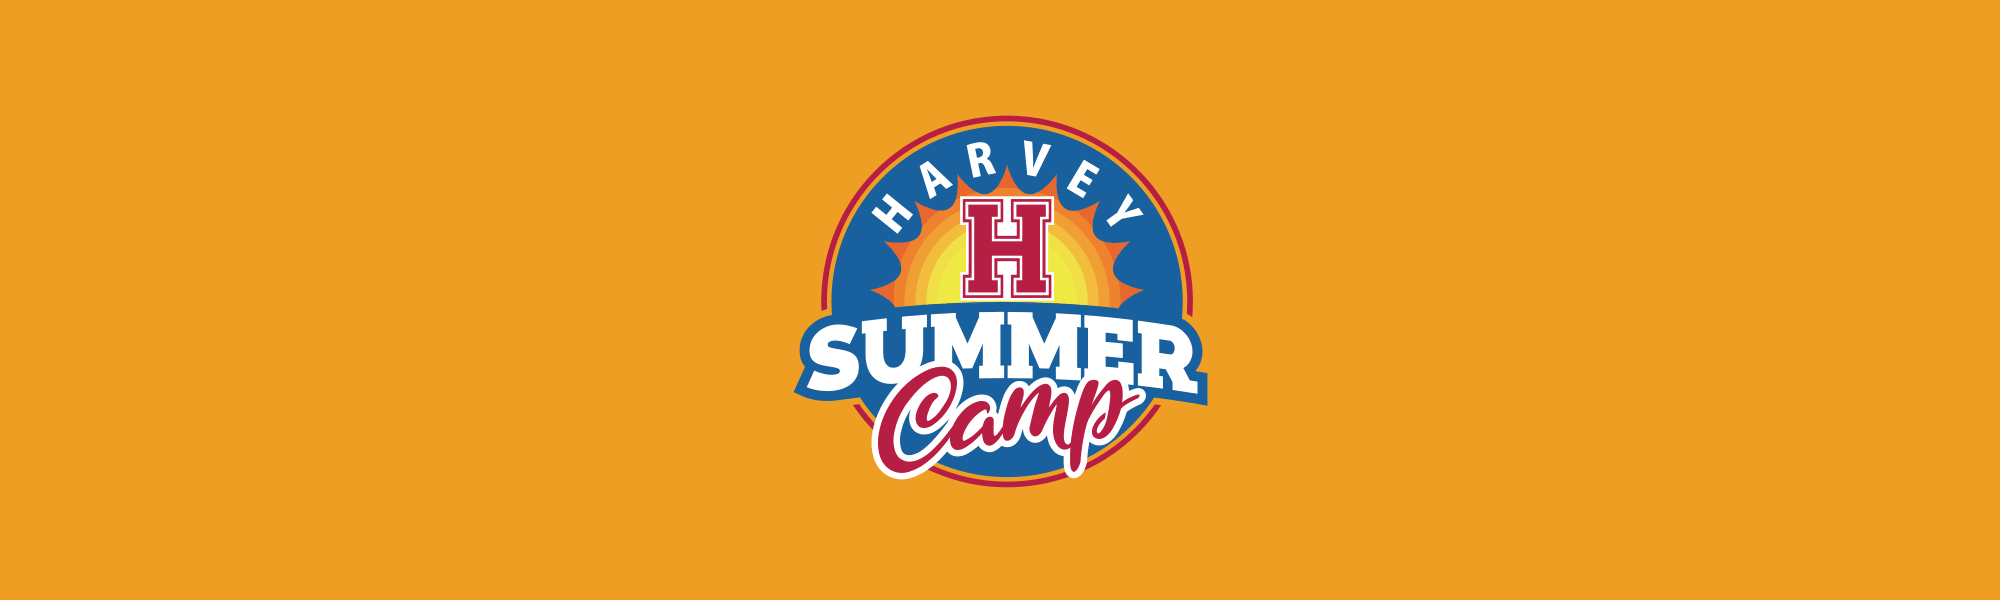 LP-aligncenter-header-Harvey-Summer-Camp-2020larger